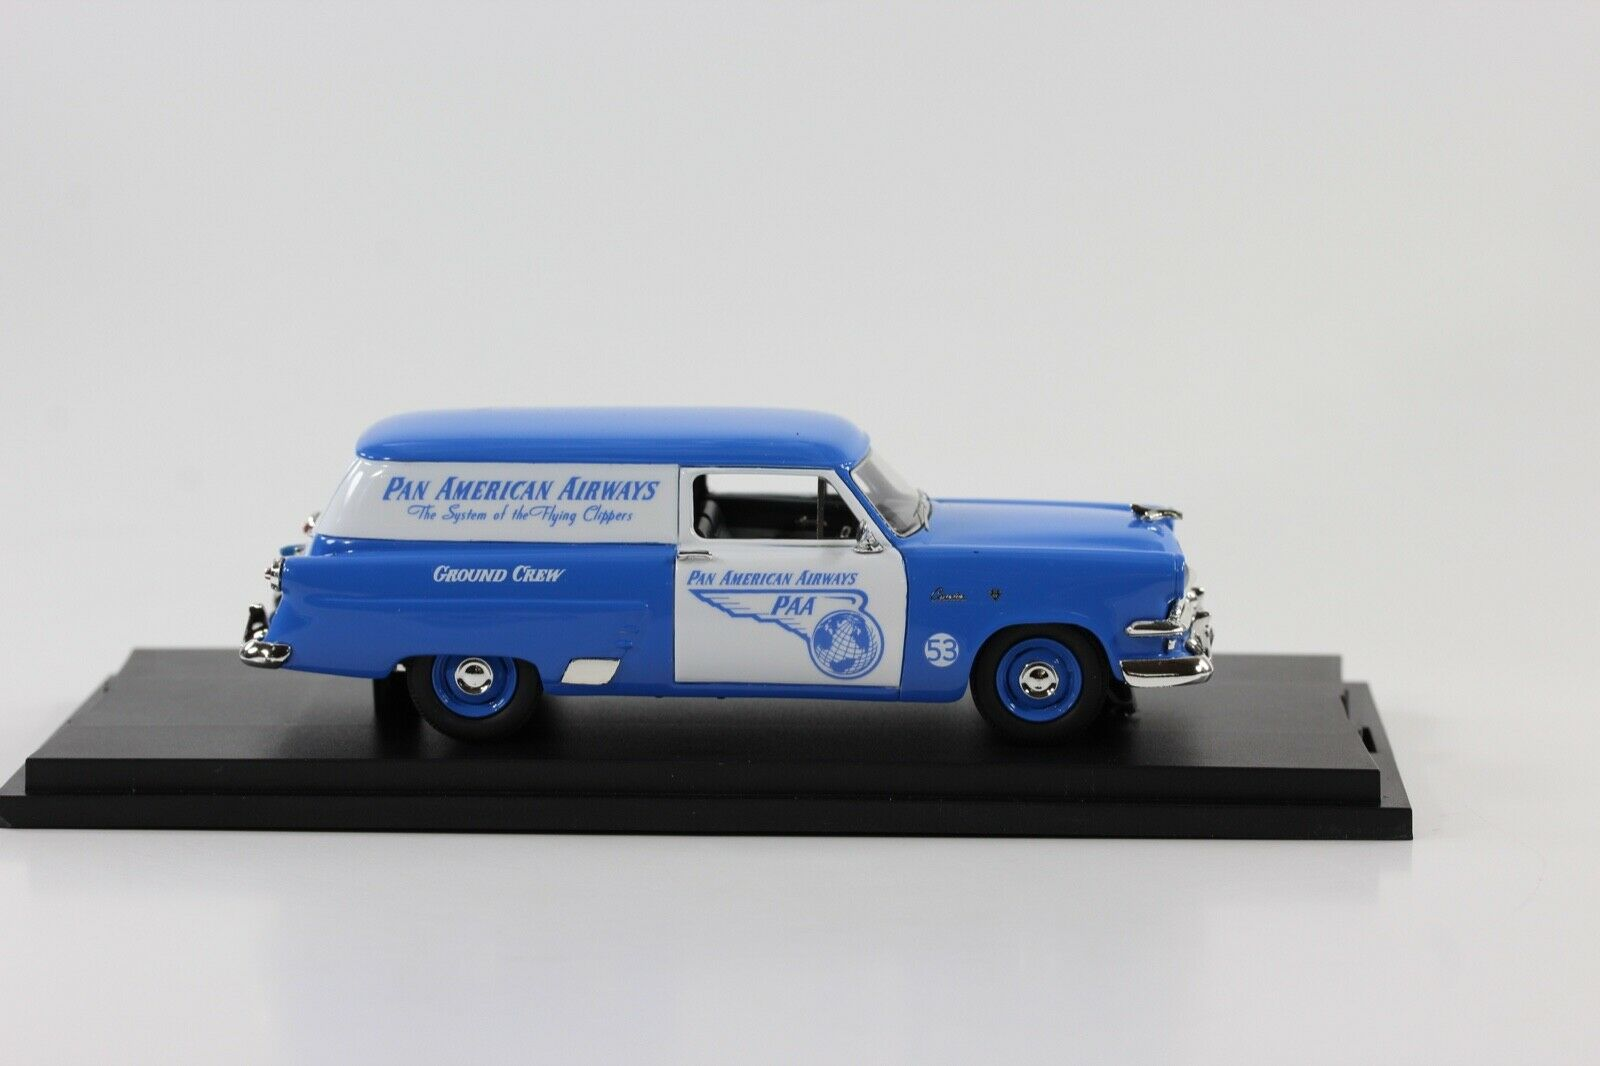 Ford  Pan American Airways  1953 orvarg Collection  1 43 USA GC-PAA-001  qualité authentique